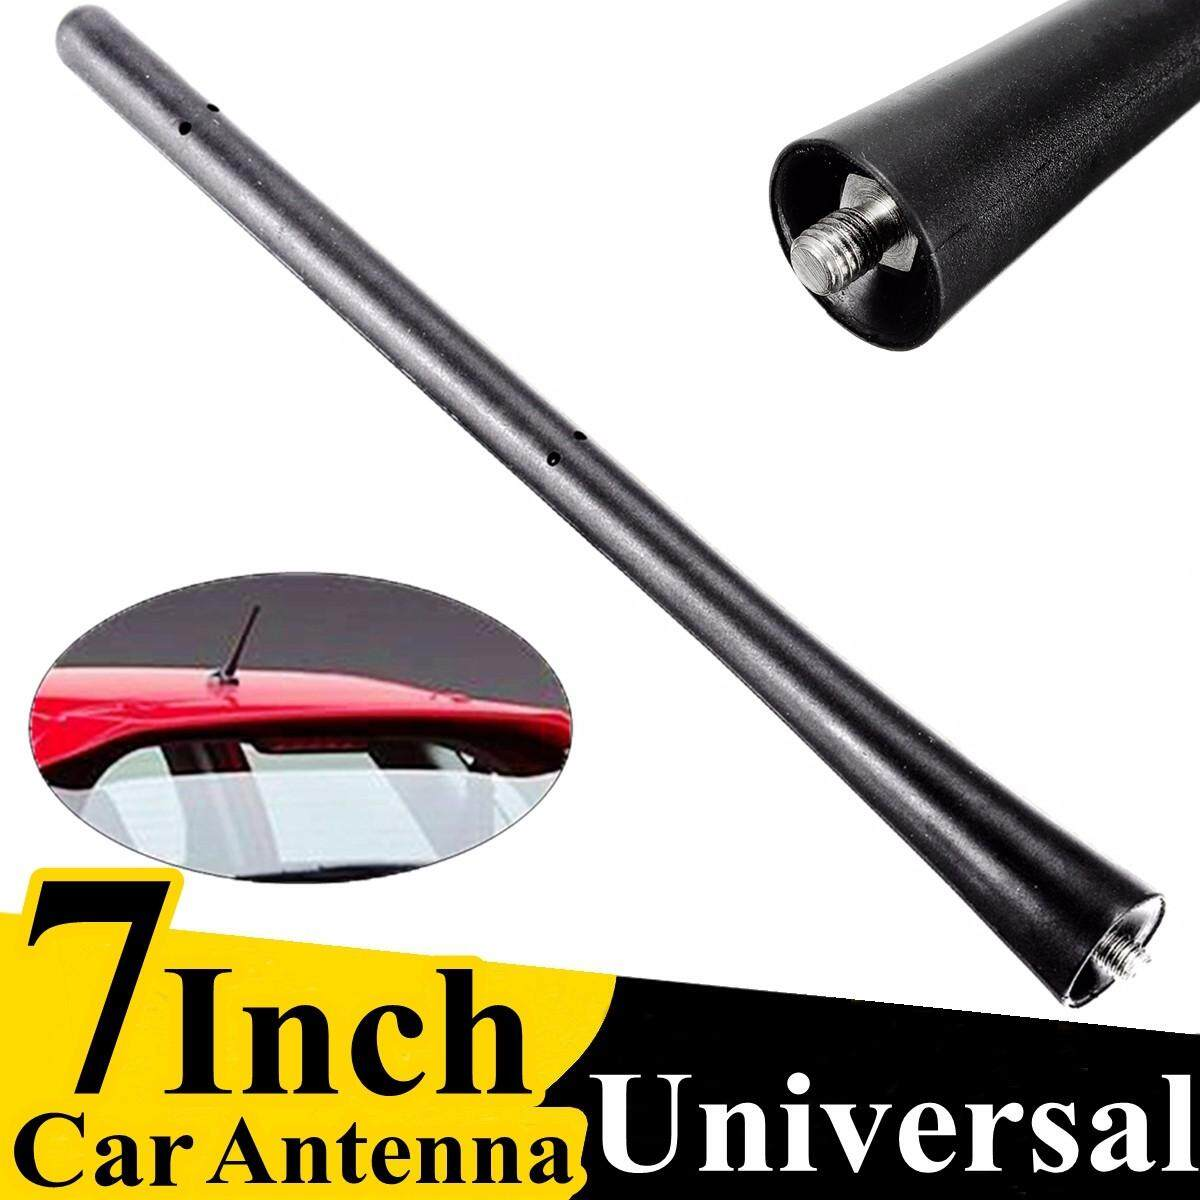 Car Antenna Topper For Sale Fin Online Brands Prices 1999 Honda Accord 7 Black Aerial Sting Mast Short Radio Stubby Mazda Nissan